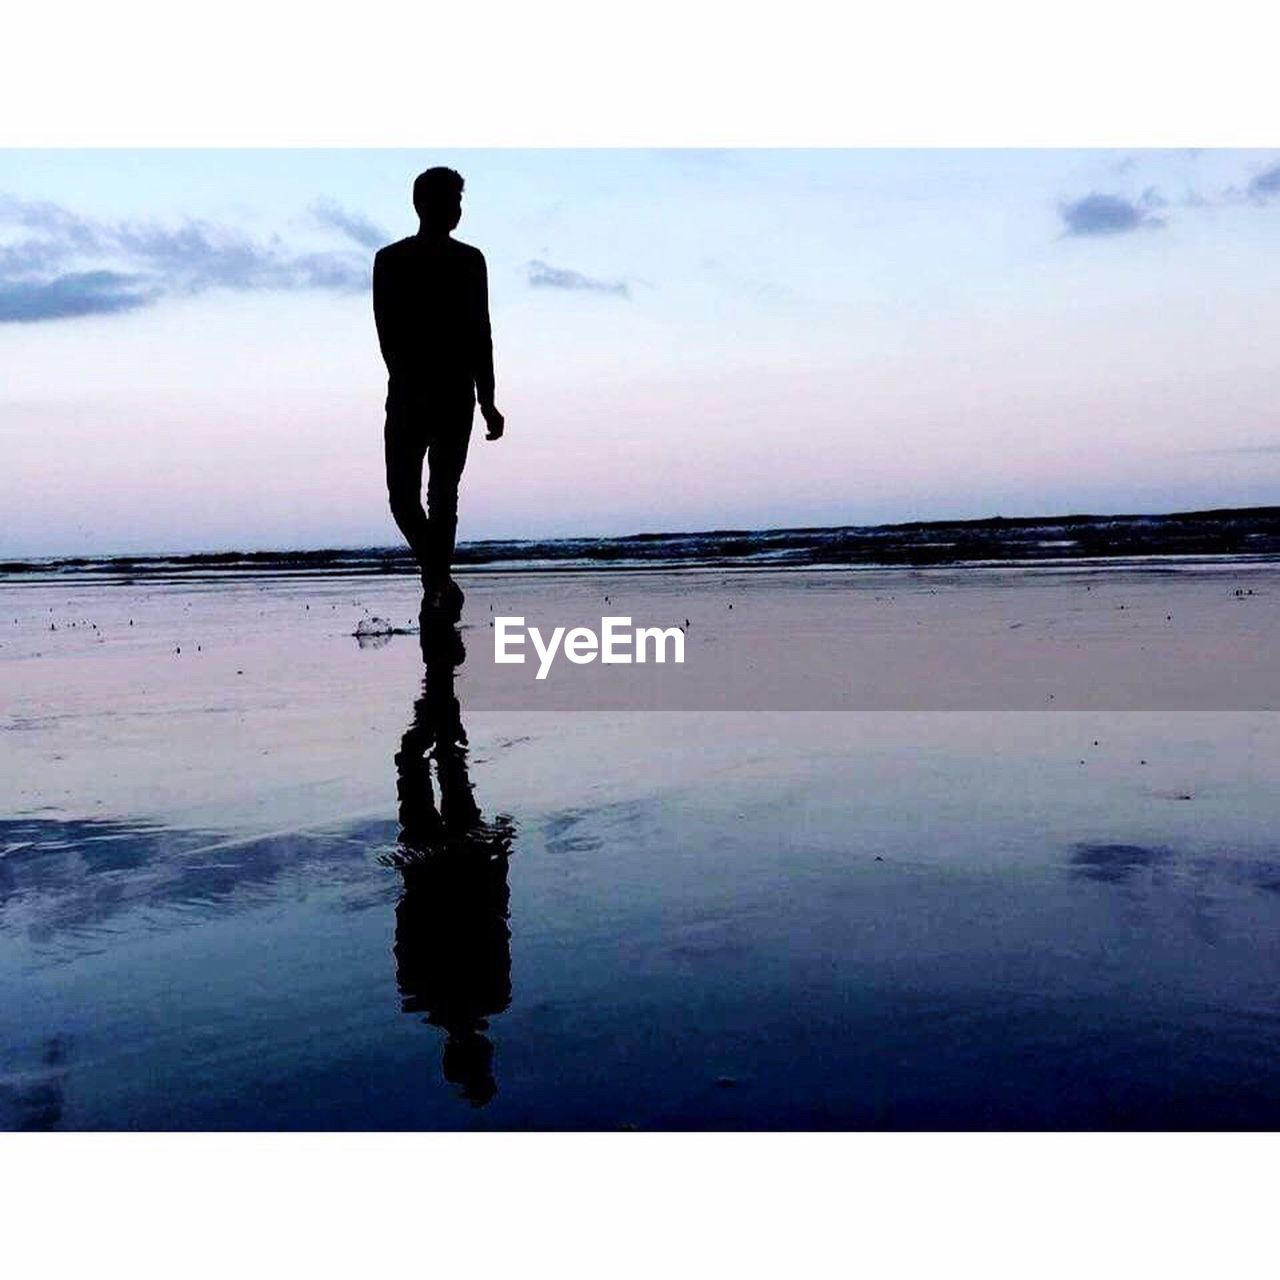 silhouette, water, reflection, beach, sea, full length, one person, standing, real people, sky, walking, men, horizon over water, outdoors, leisure activity, beauty in nature, tranquility, nature, scenics, sunset, lifestyles, day, people